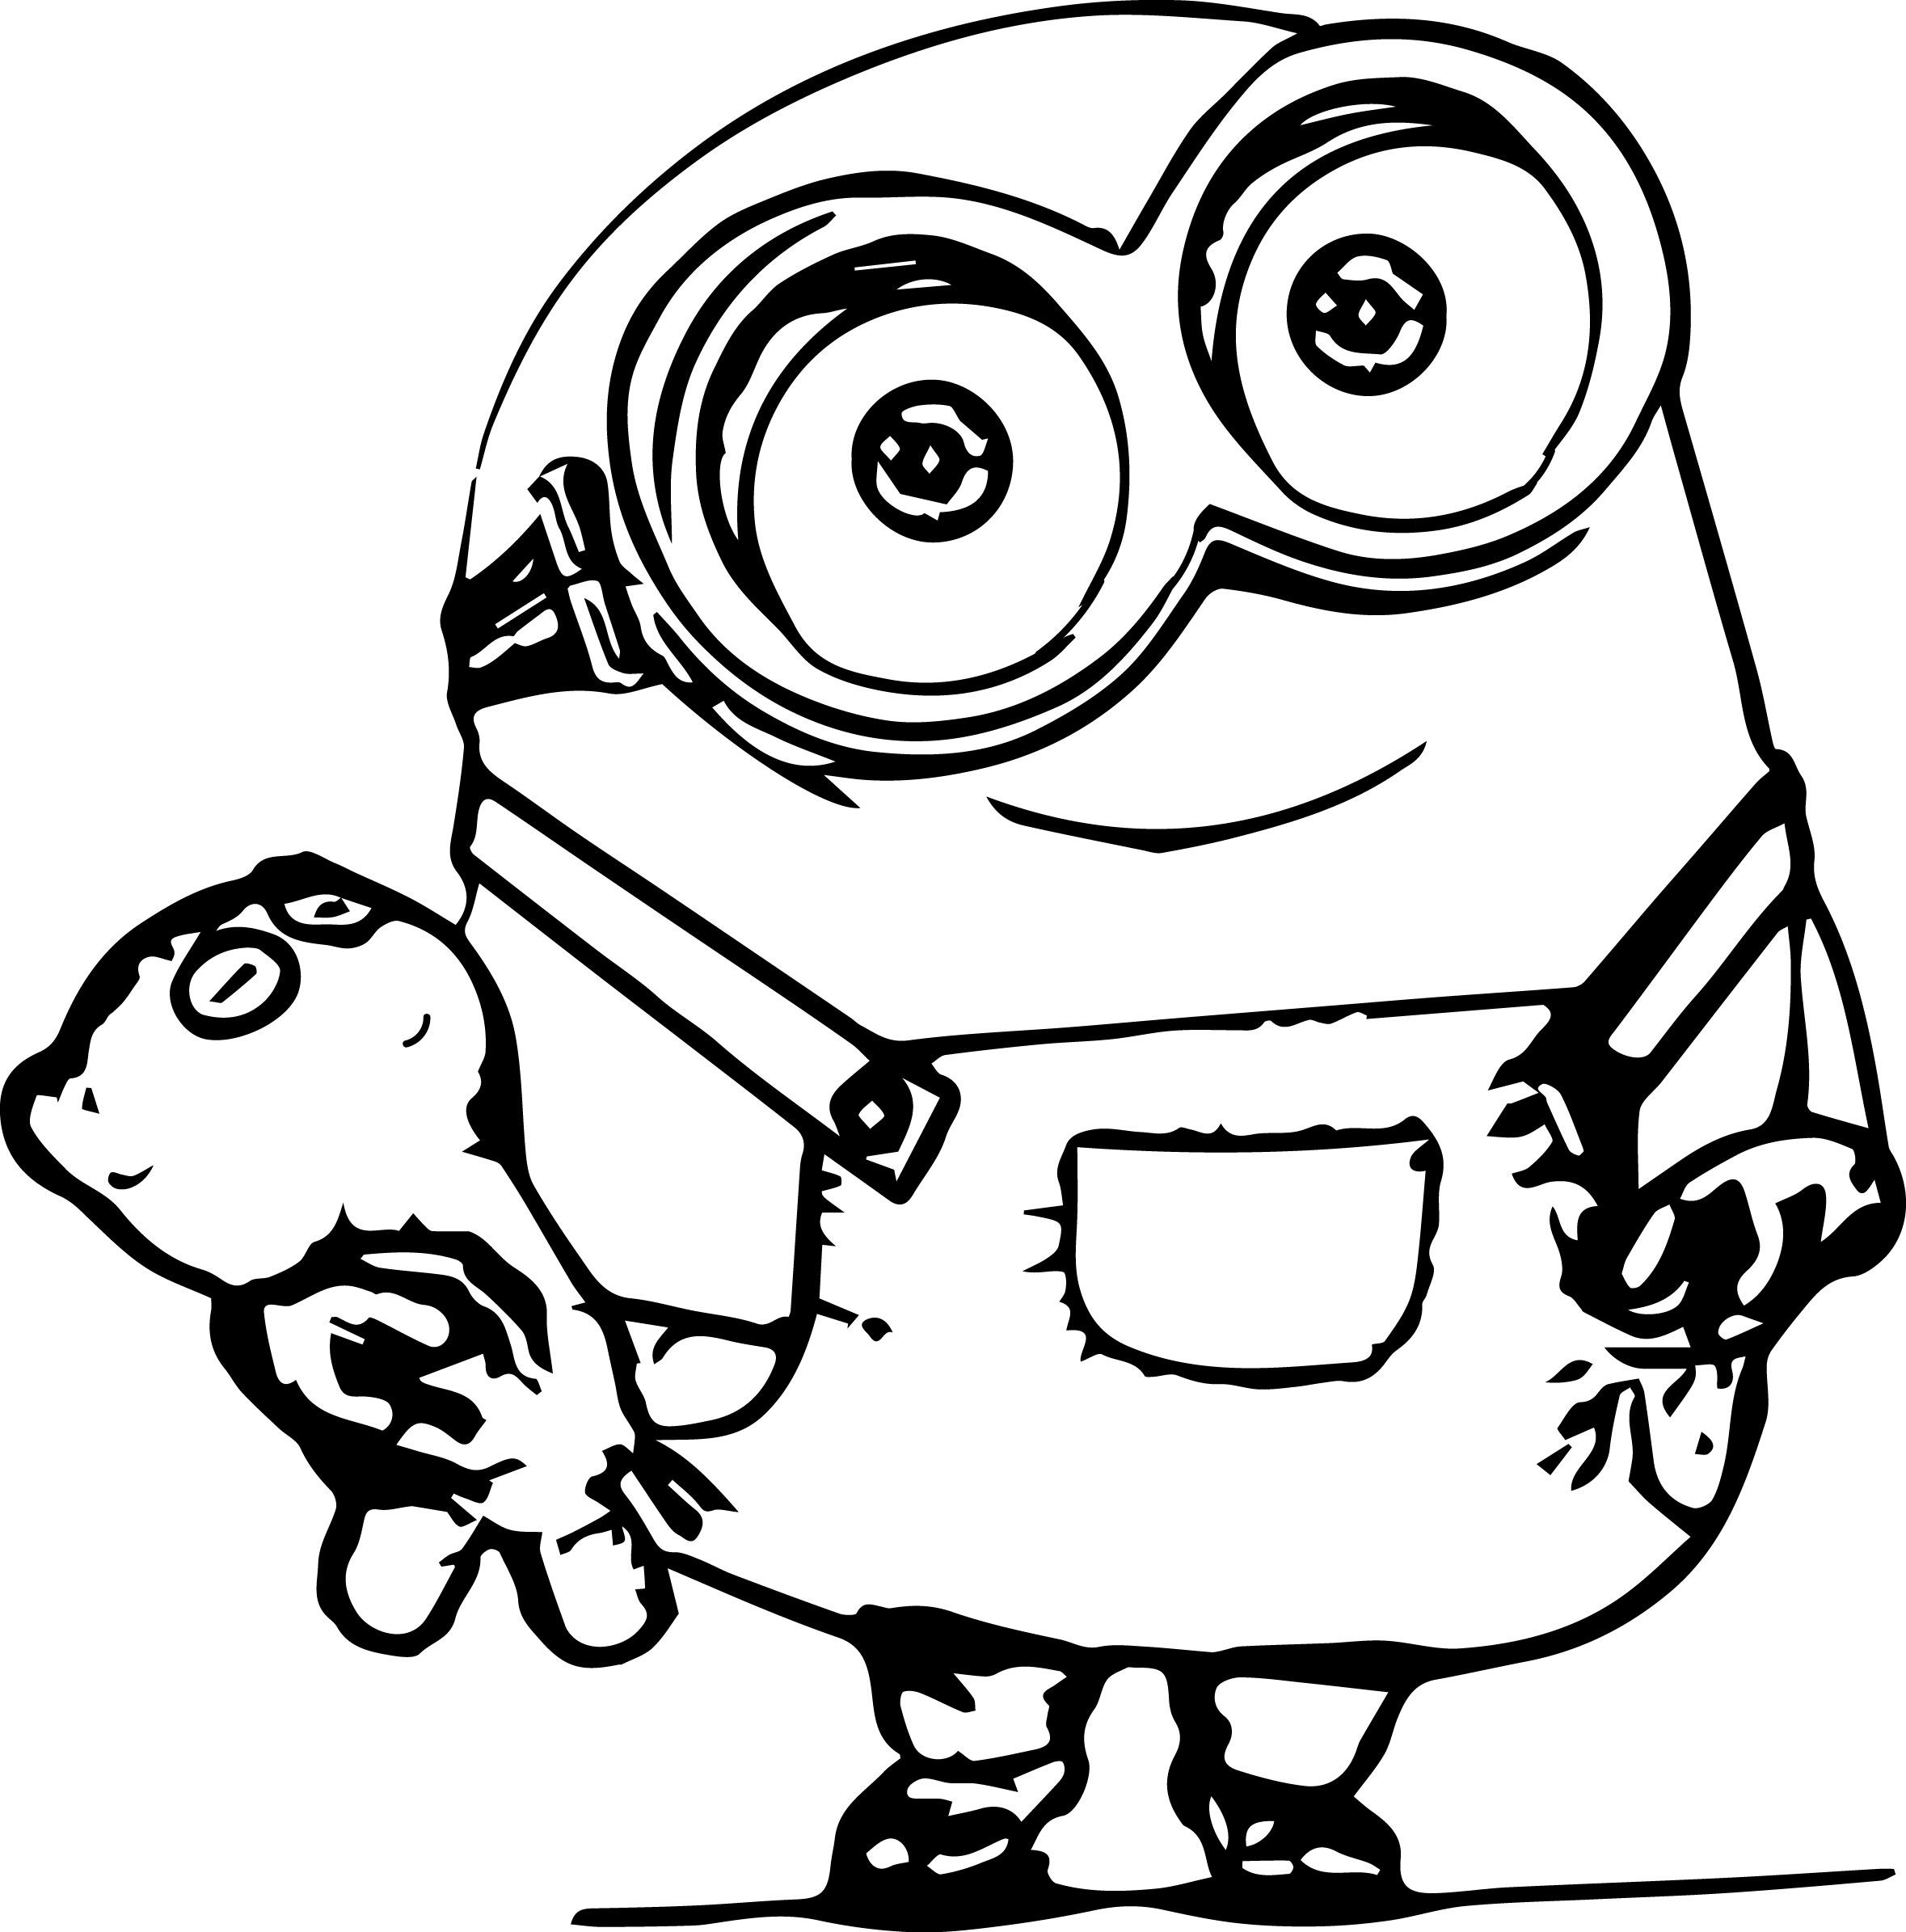 awesome minions coloring pages - Cloring Sheets